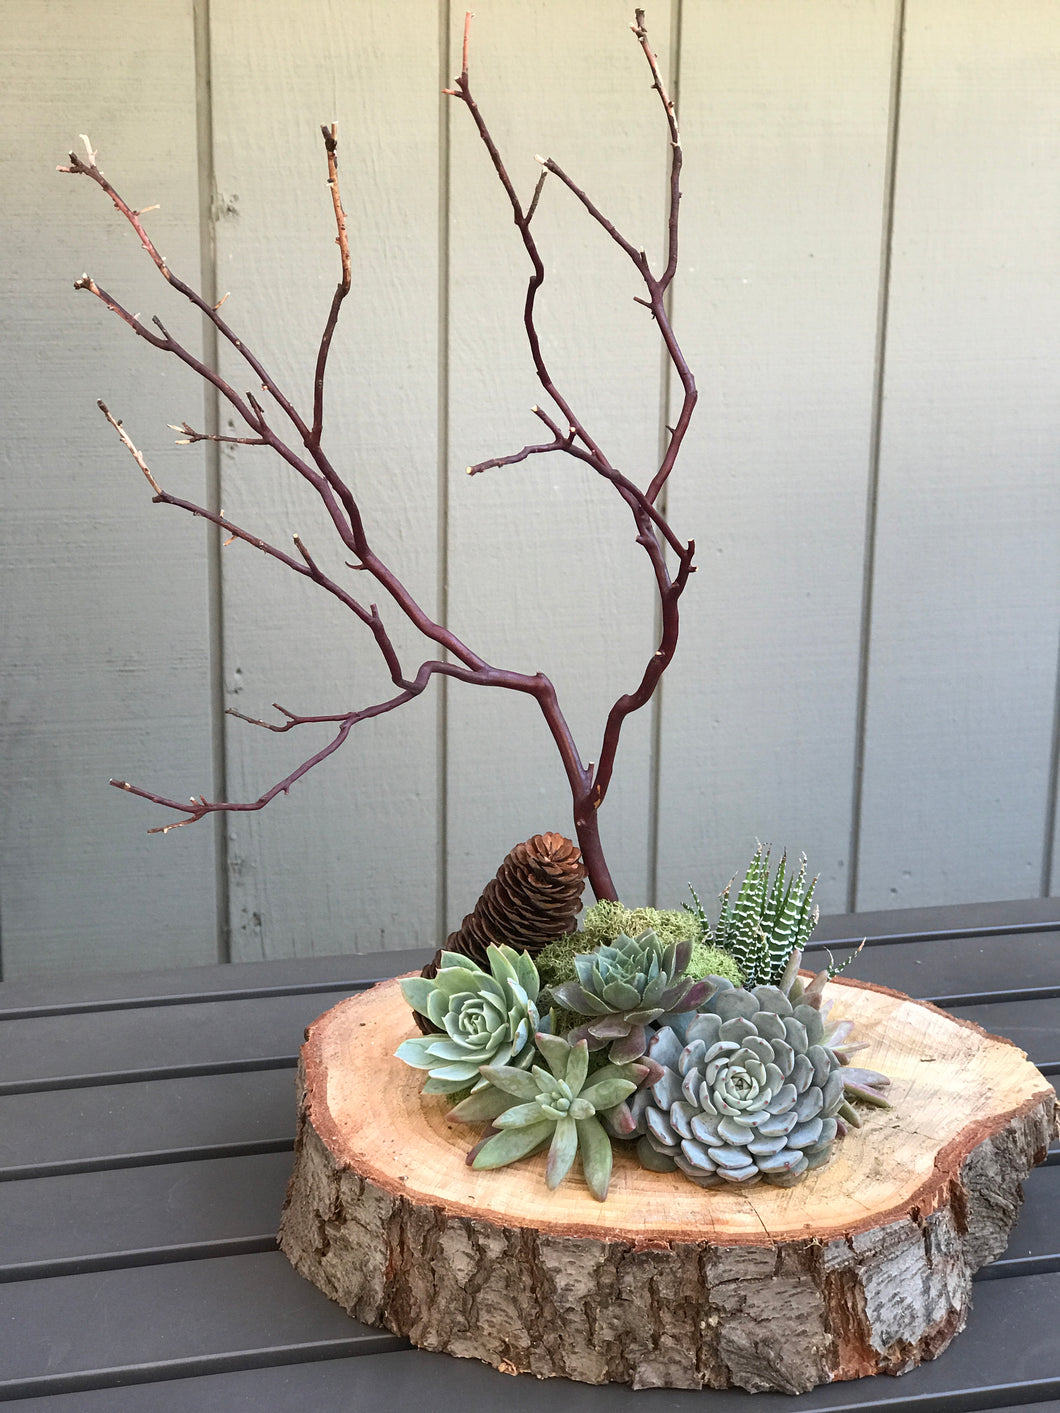 ****Ticket sales ended***Succulent Centerpiece Workshop at Folsom Holiday Shopportunity November 23